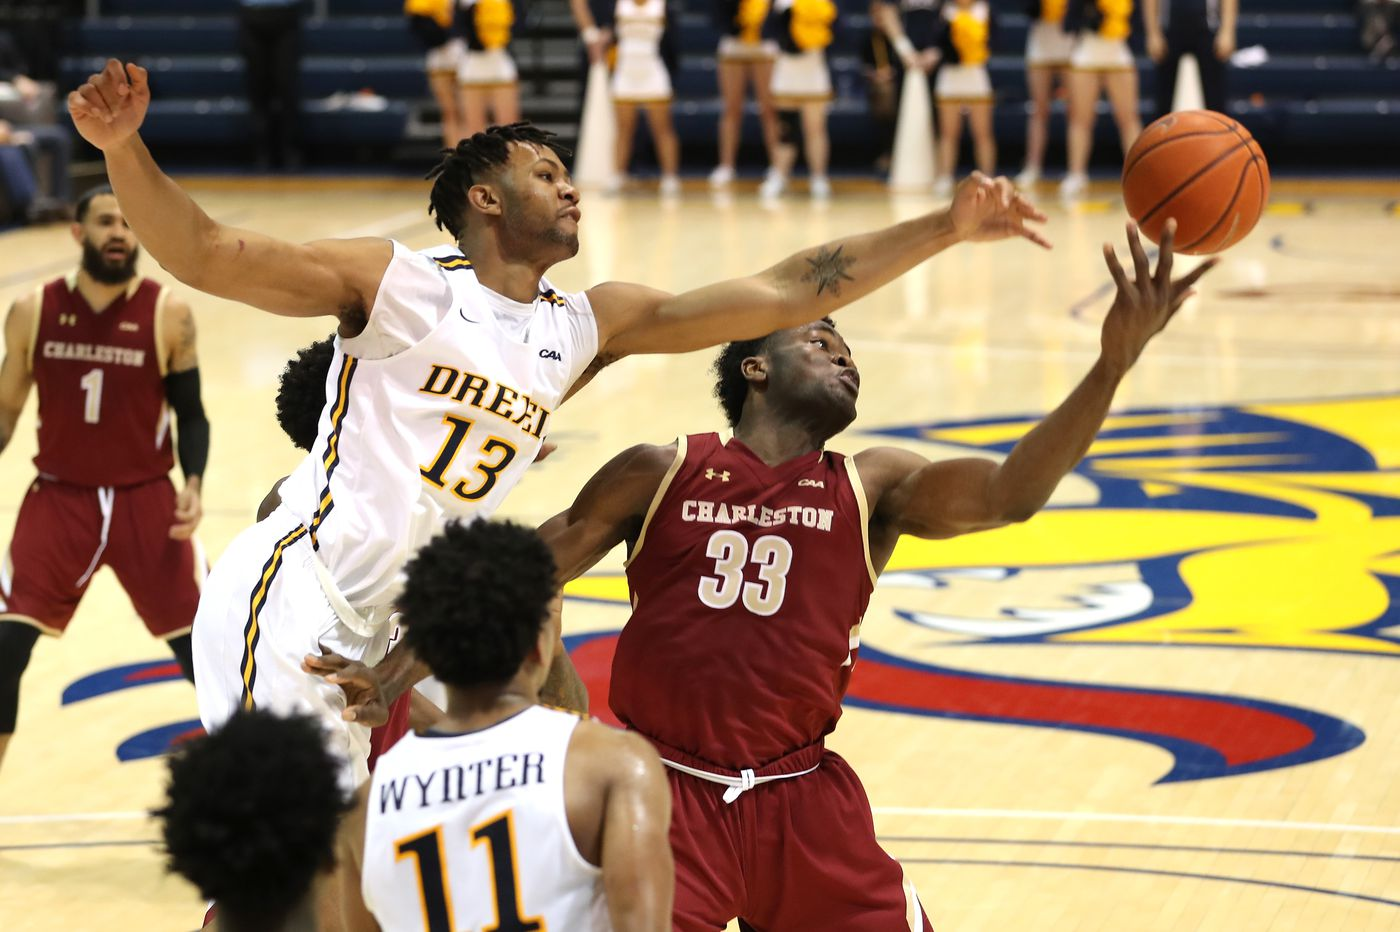 Charleston 76, Drexel 65: Stats, highlights, and reaction from Dragons' loss